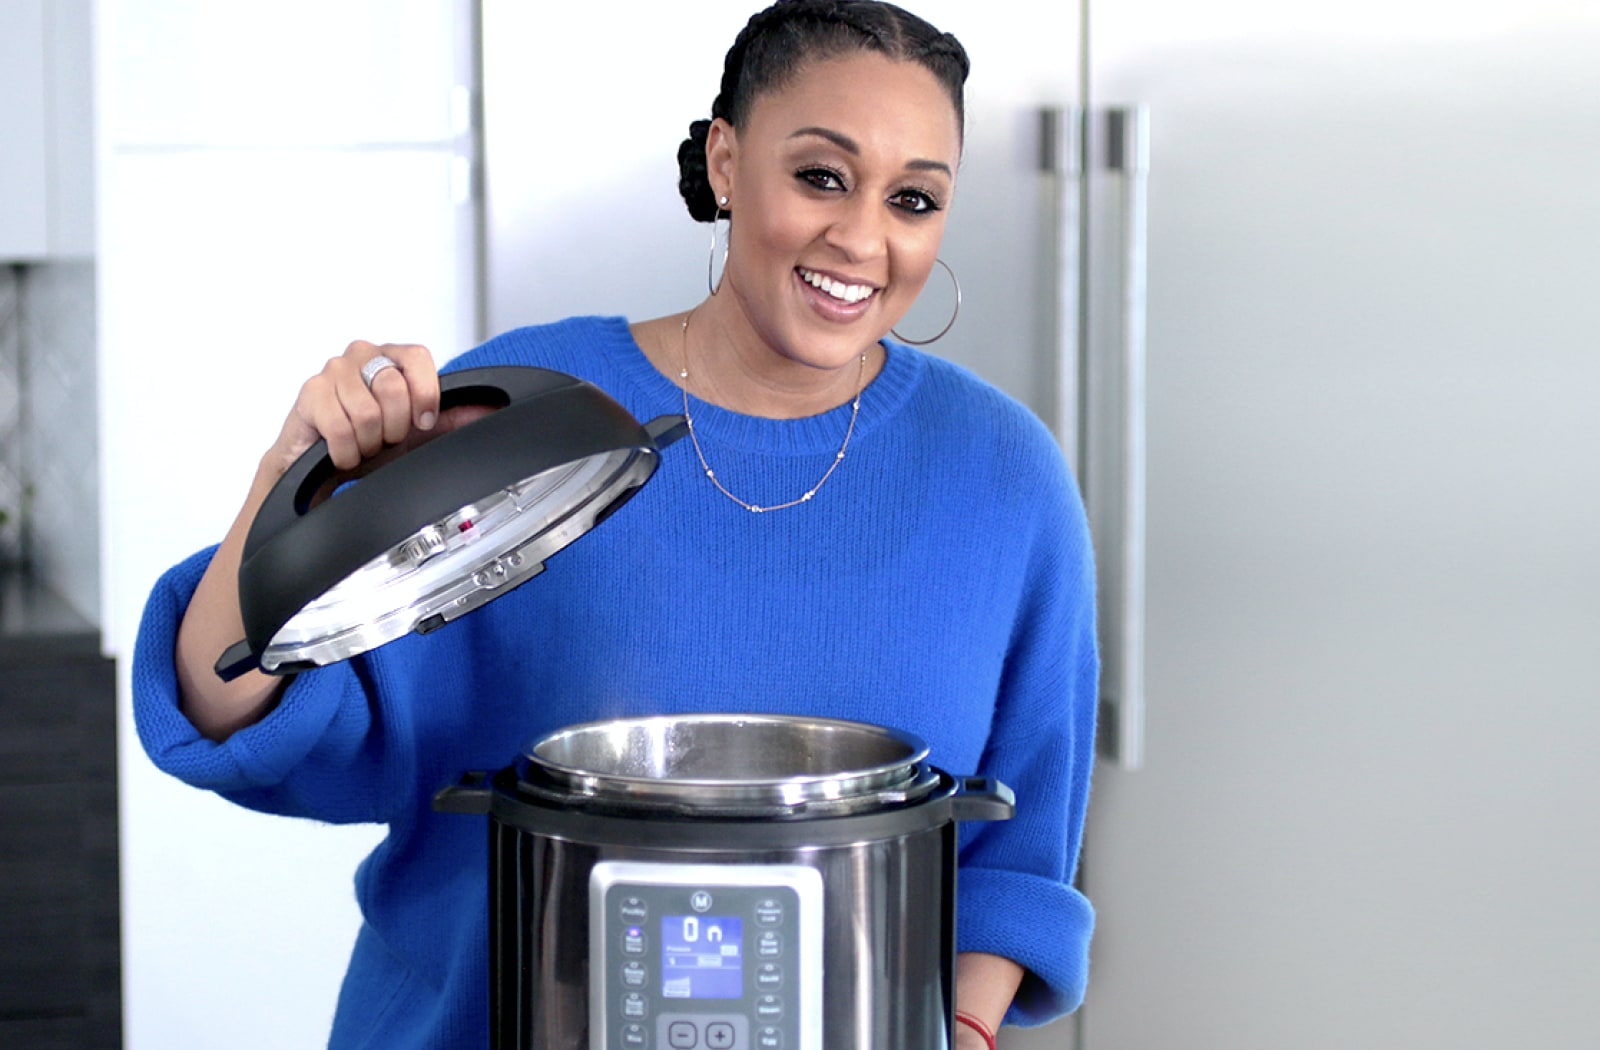 Tia Mowry's Quick Fix & Mealthy image